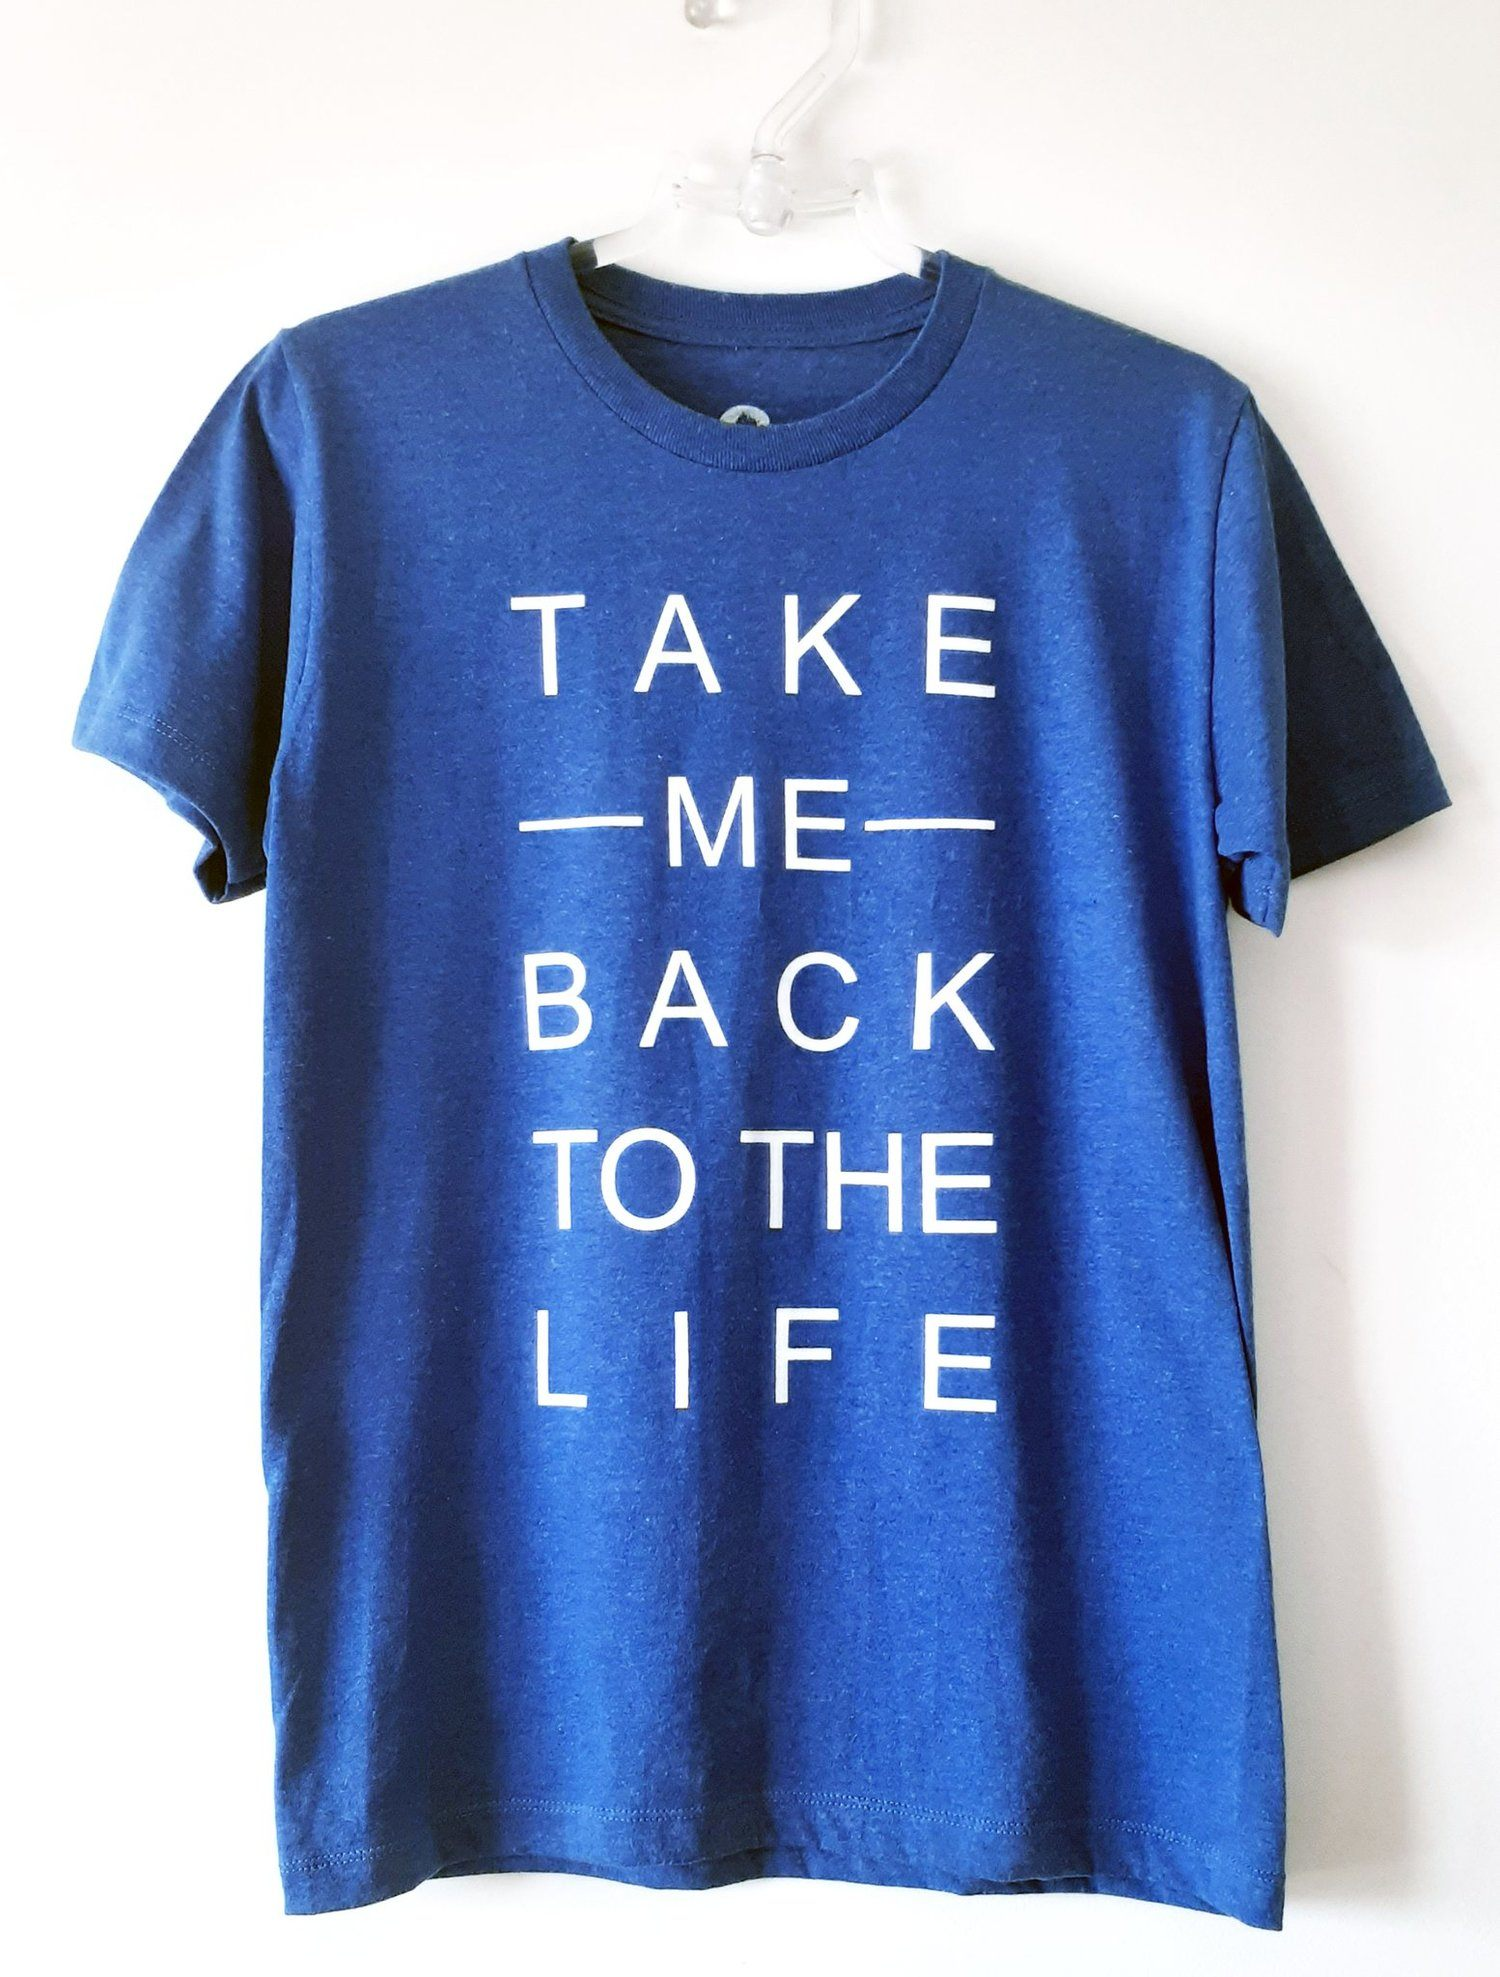 Camiseta masculina T-Shirt Take me back - High High